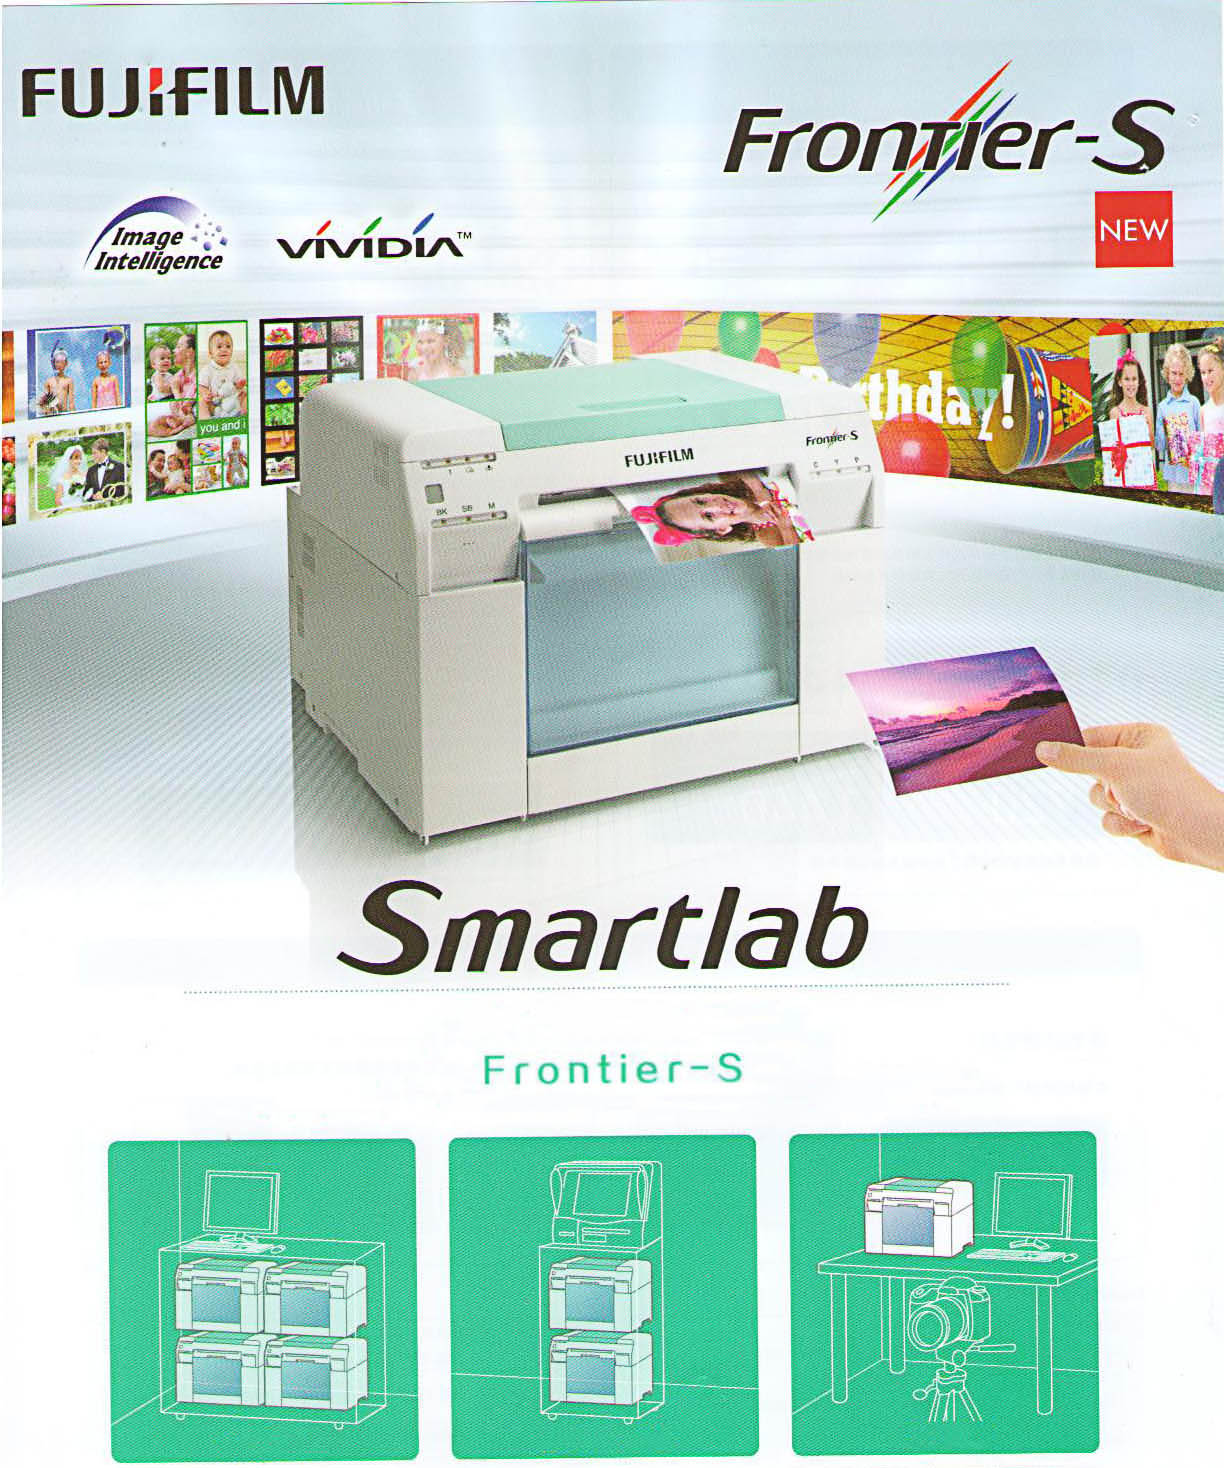 Fujifilm Frontier-S photo printer